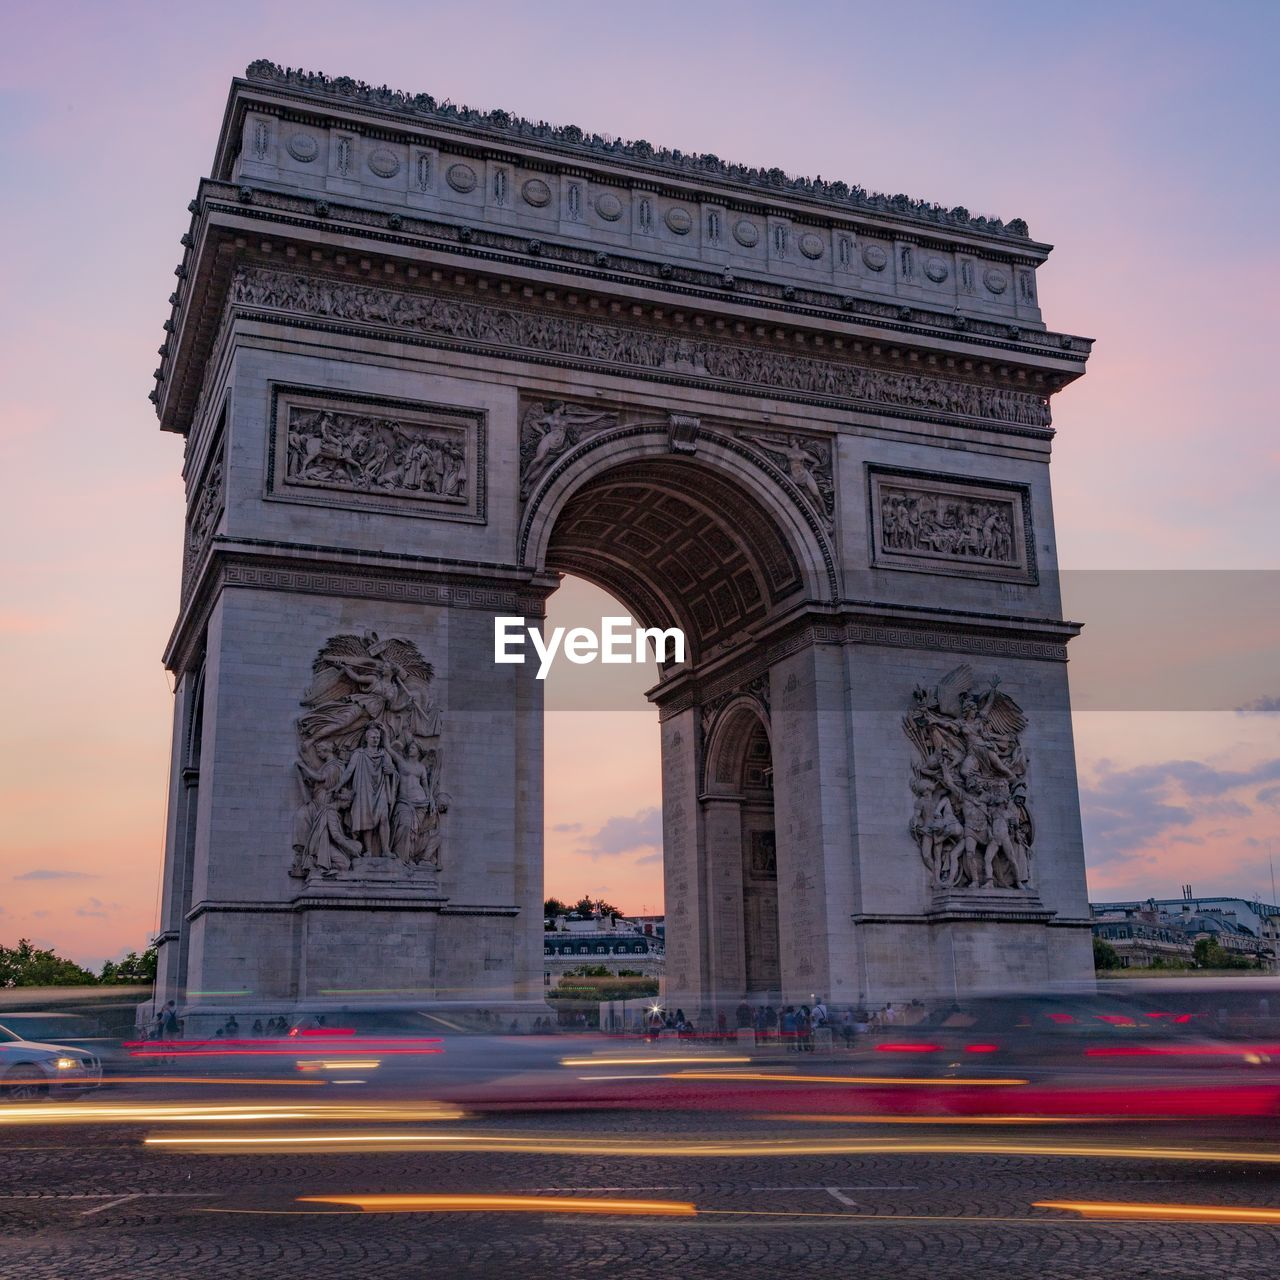 architecture, triumphal arch, arch, built structure, sky, monument, travel destinations, history, the past, city, sunset, art and craft, transportation, motion, nature, road, sculpture, street, tourism, low angle view, no people, outdoors